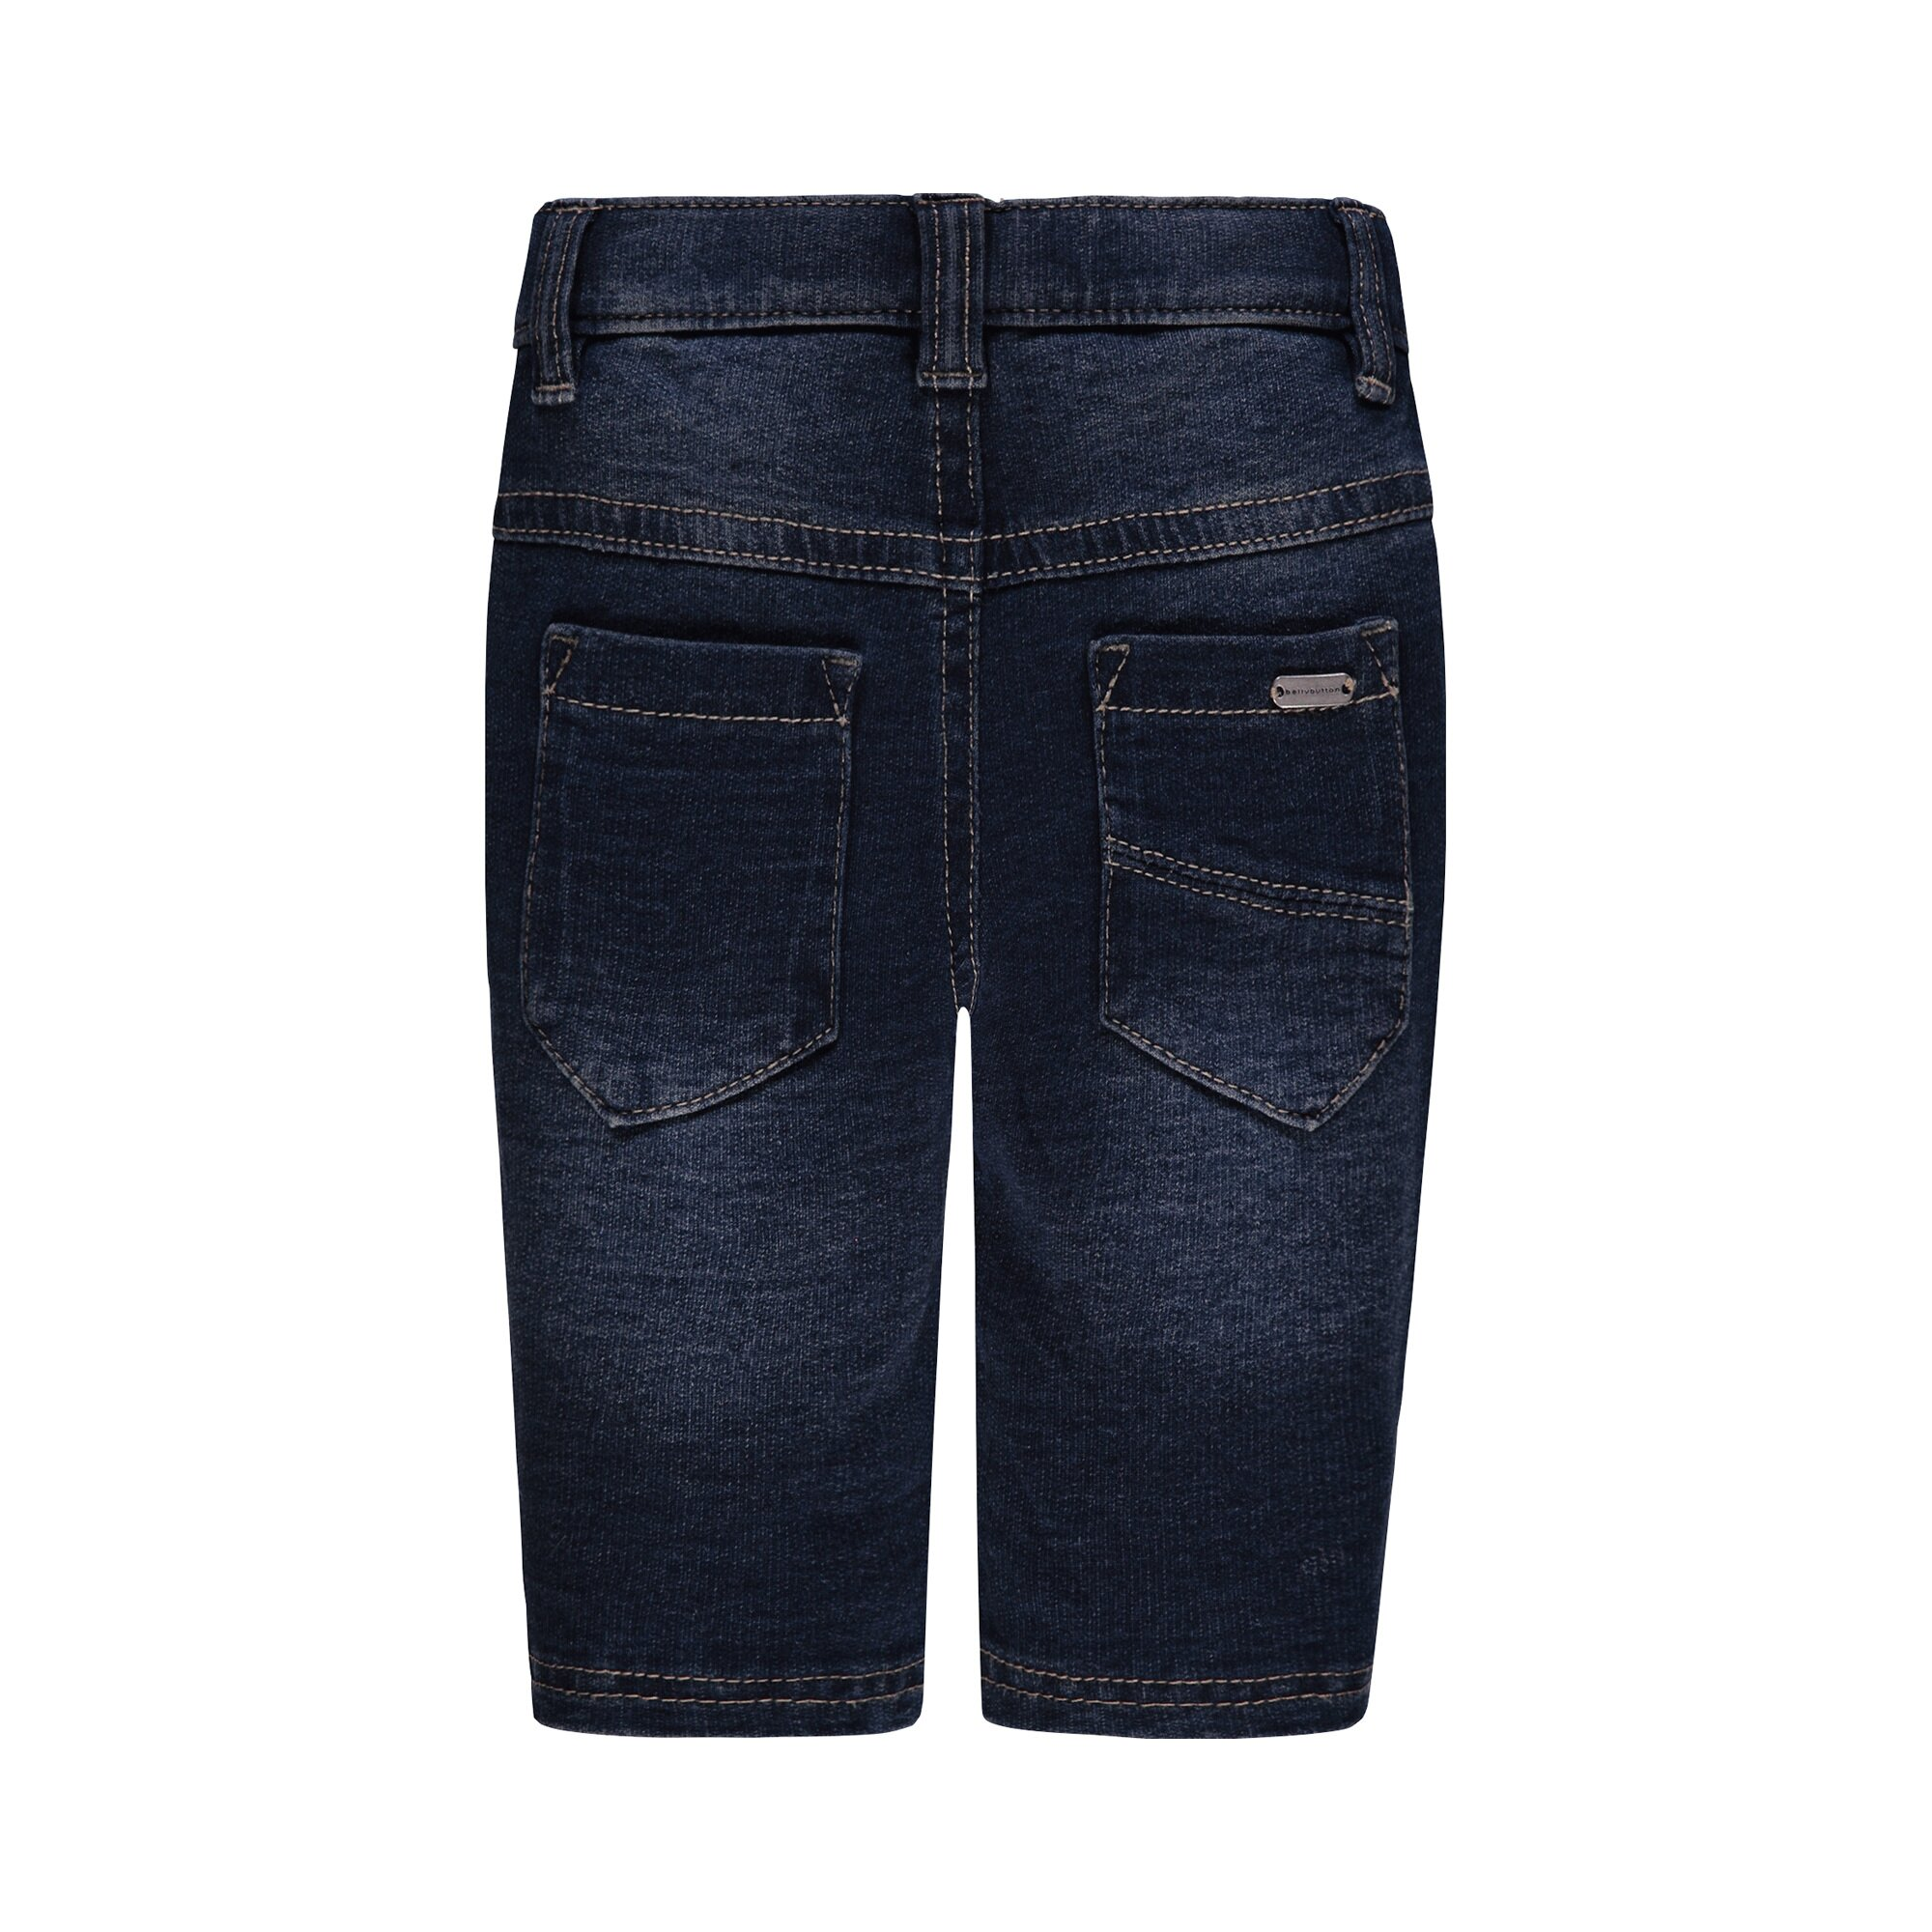 bellybutton-jeans-5-pocket